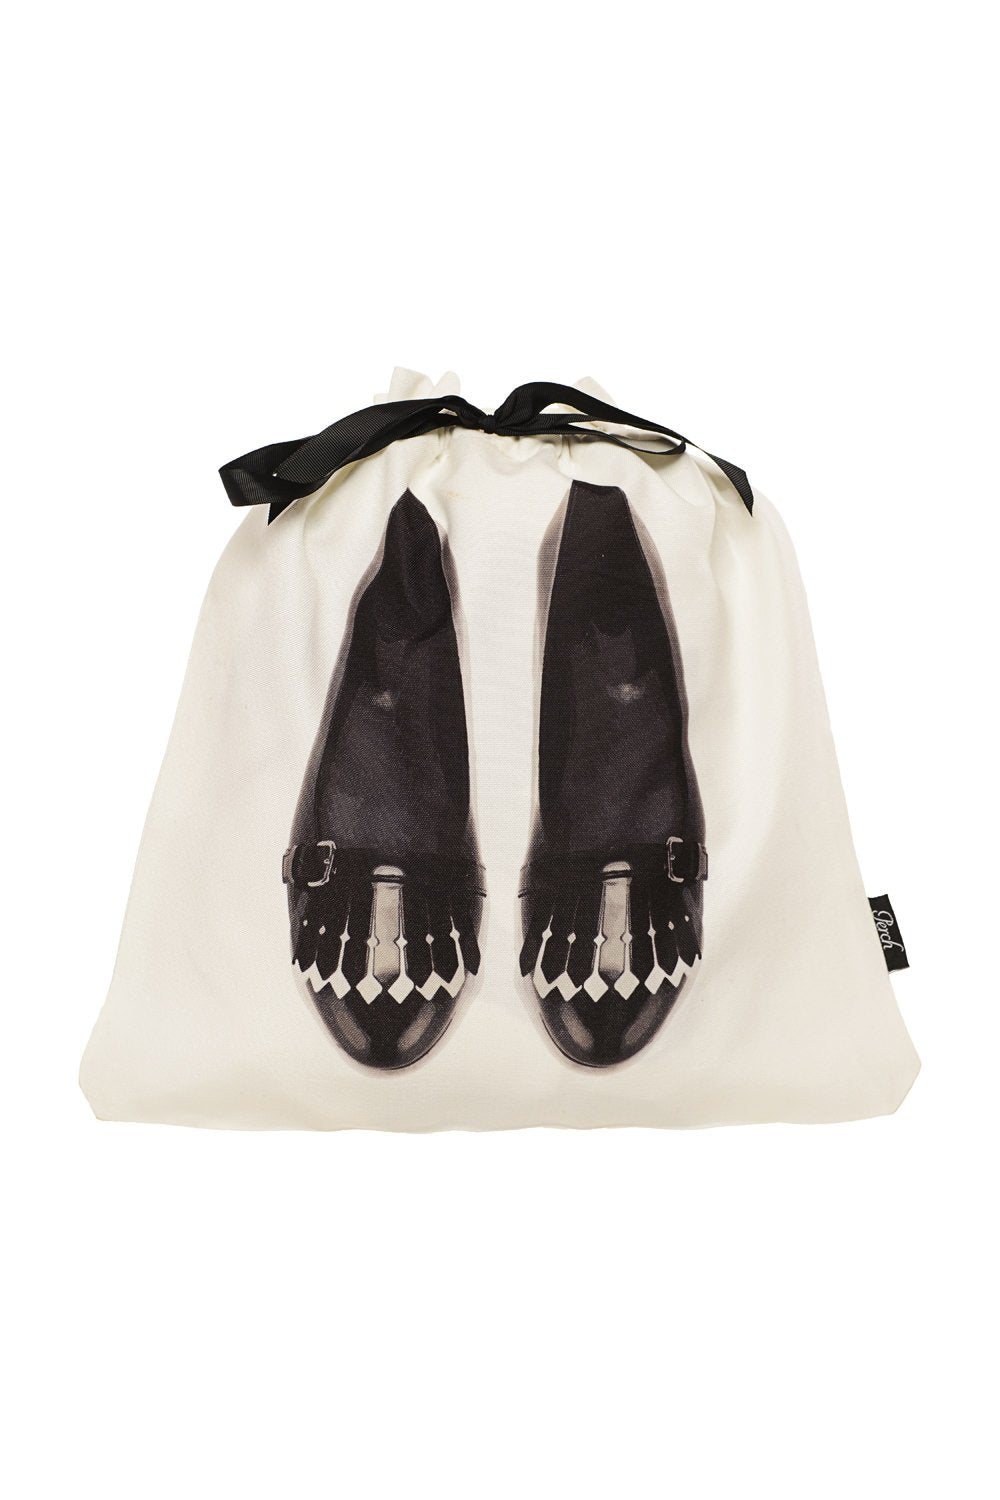 Flat Shoes Bag